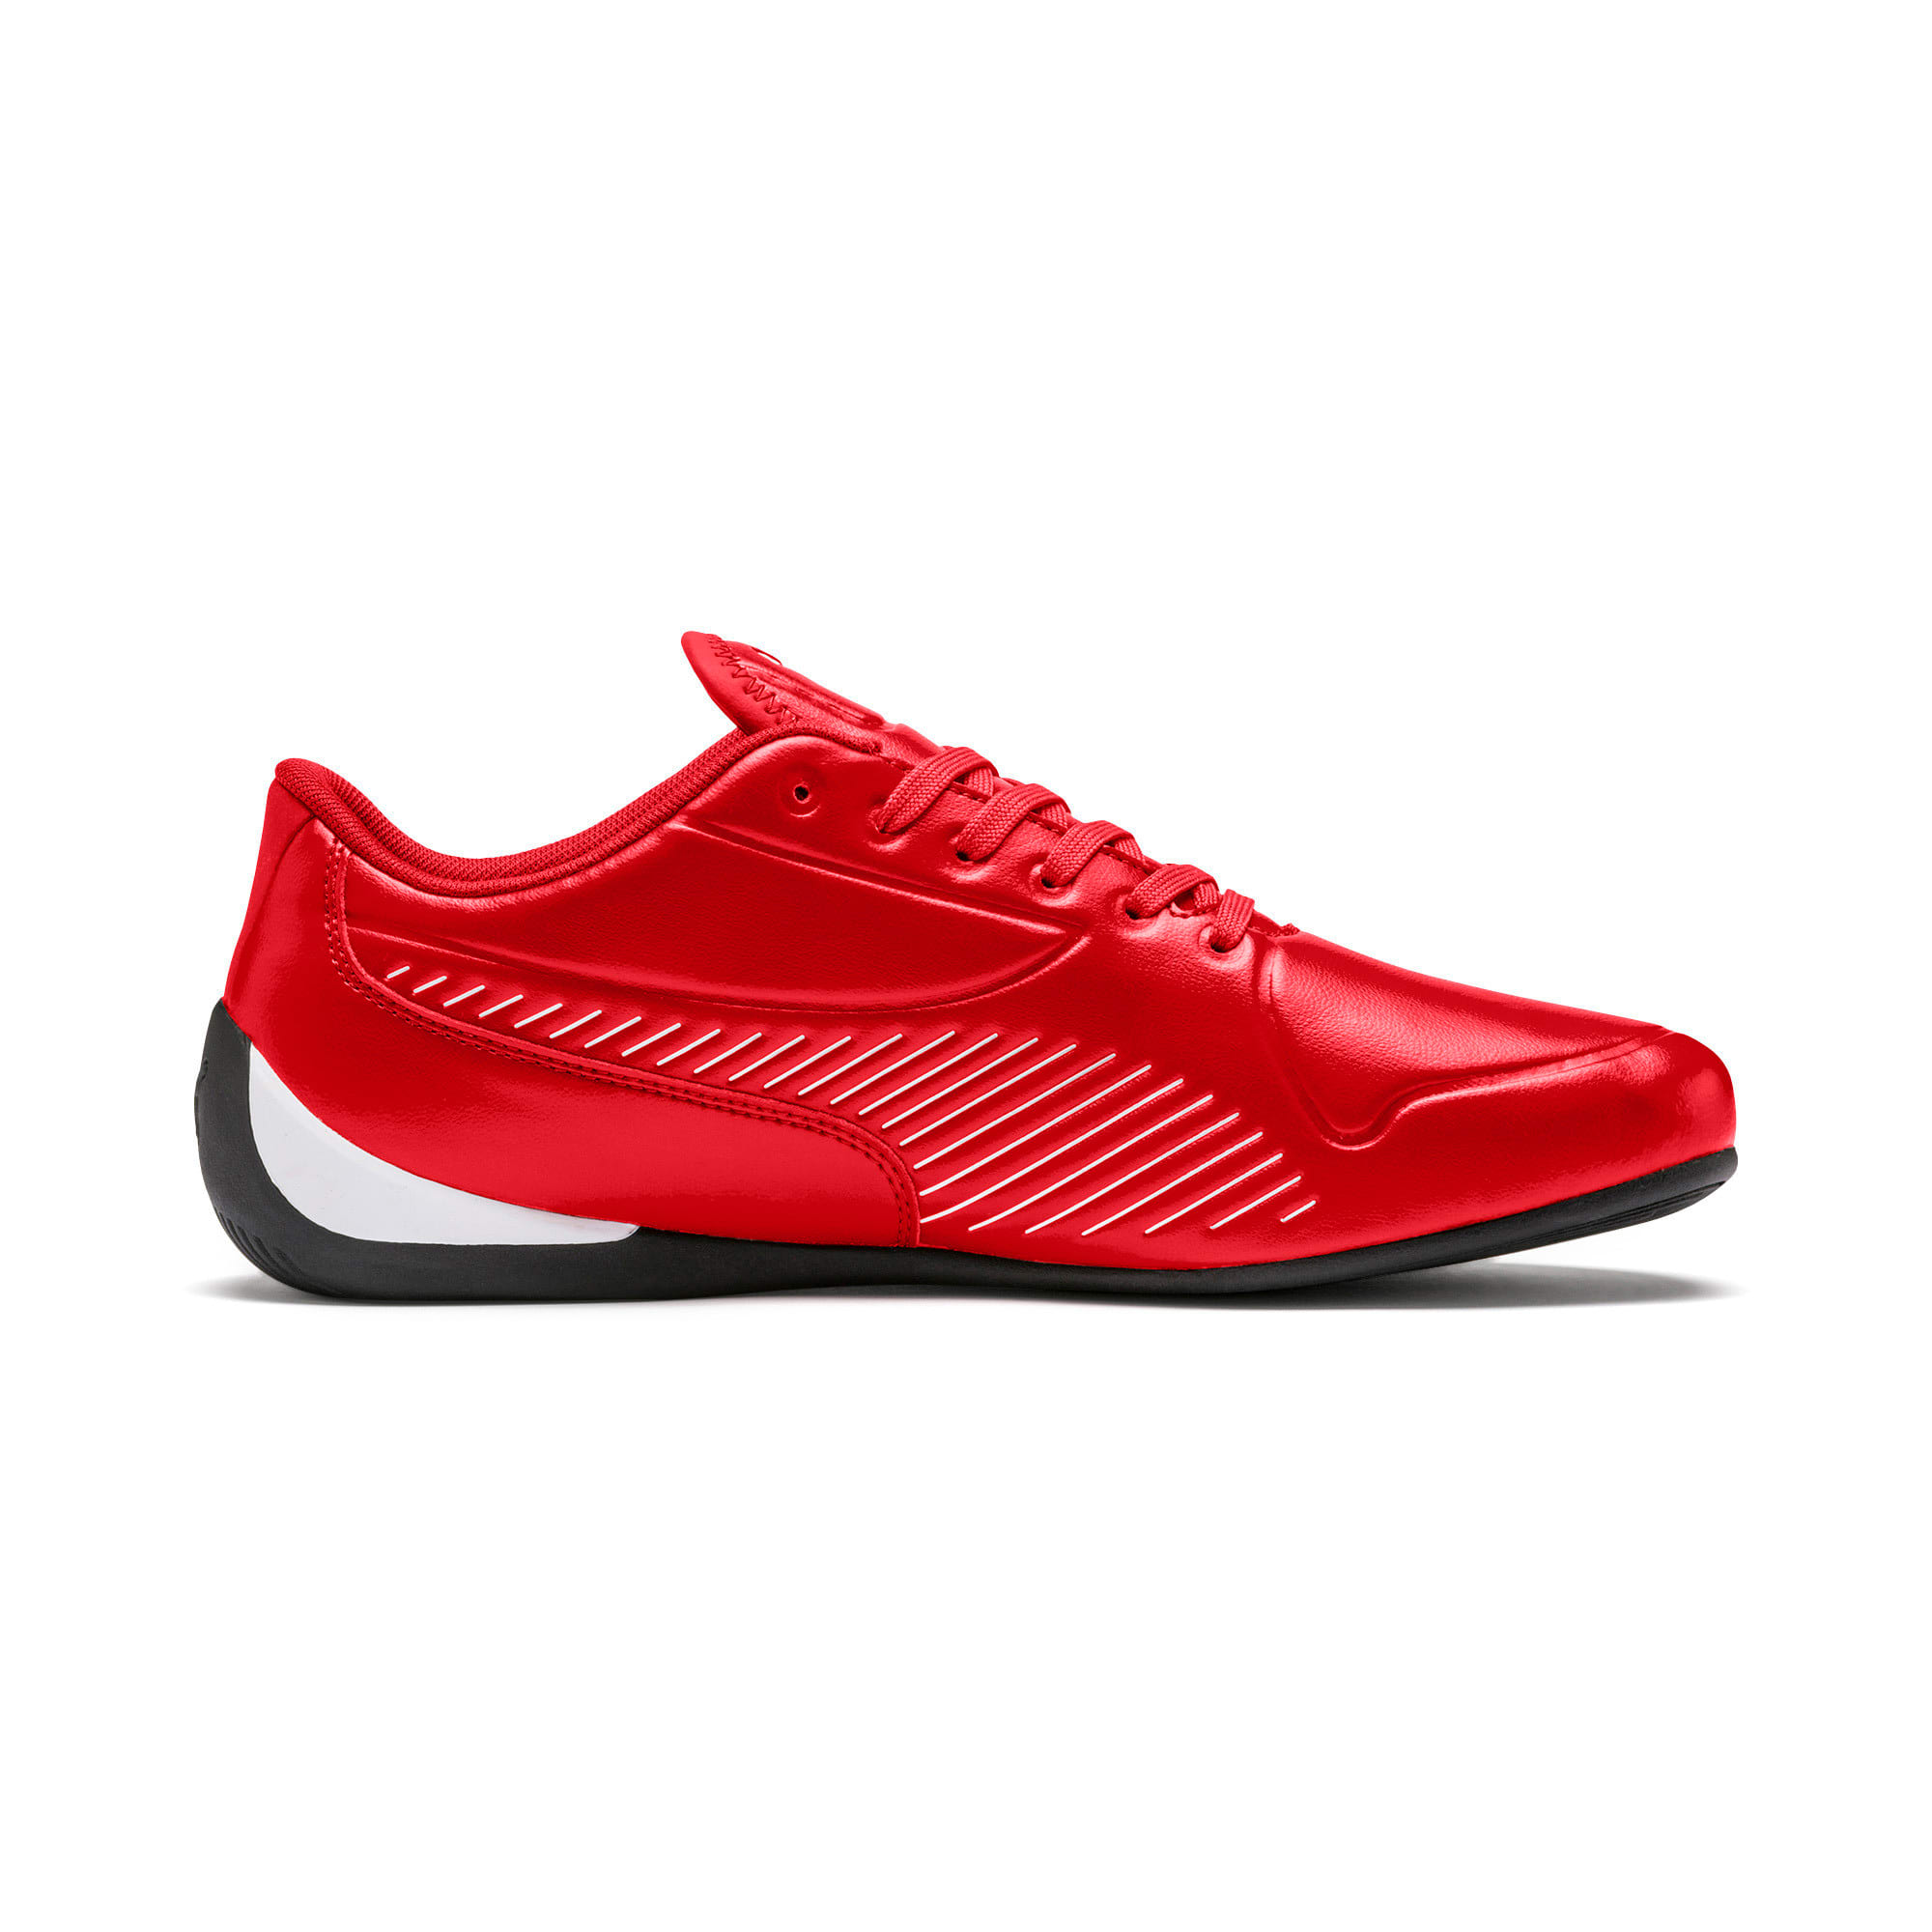 Thumbnail 5 of Scuderia Ferrari Drift Cat 7S Ultra Men's Shoes, Rosso Corsa-Puma White, medium